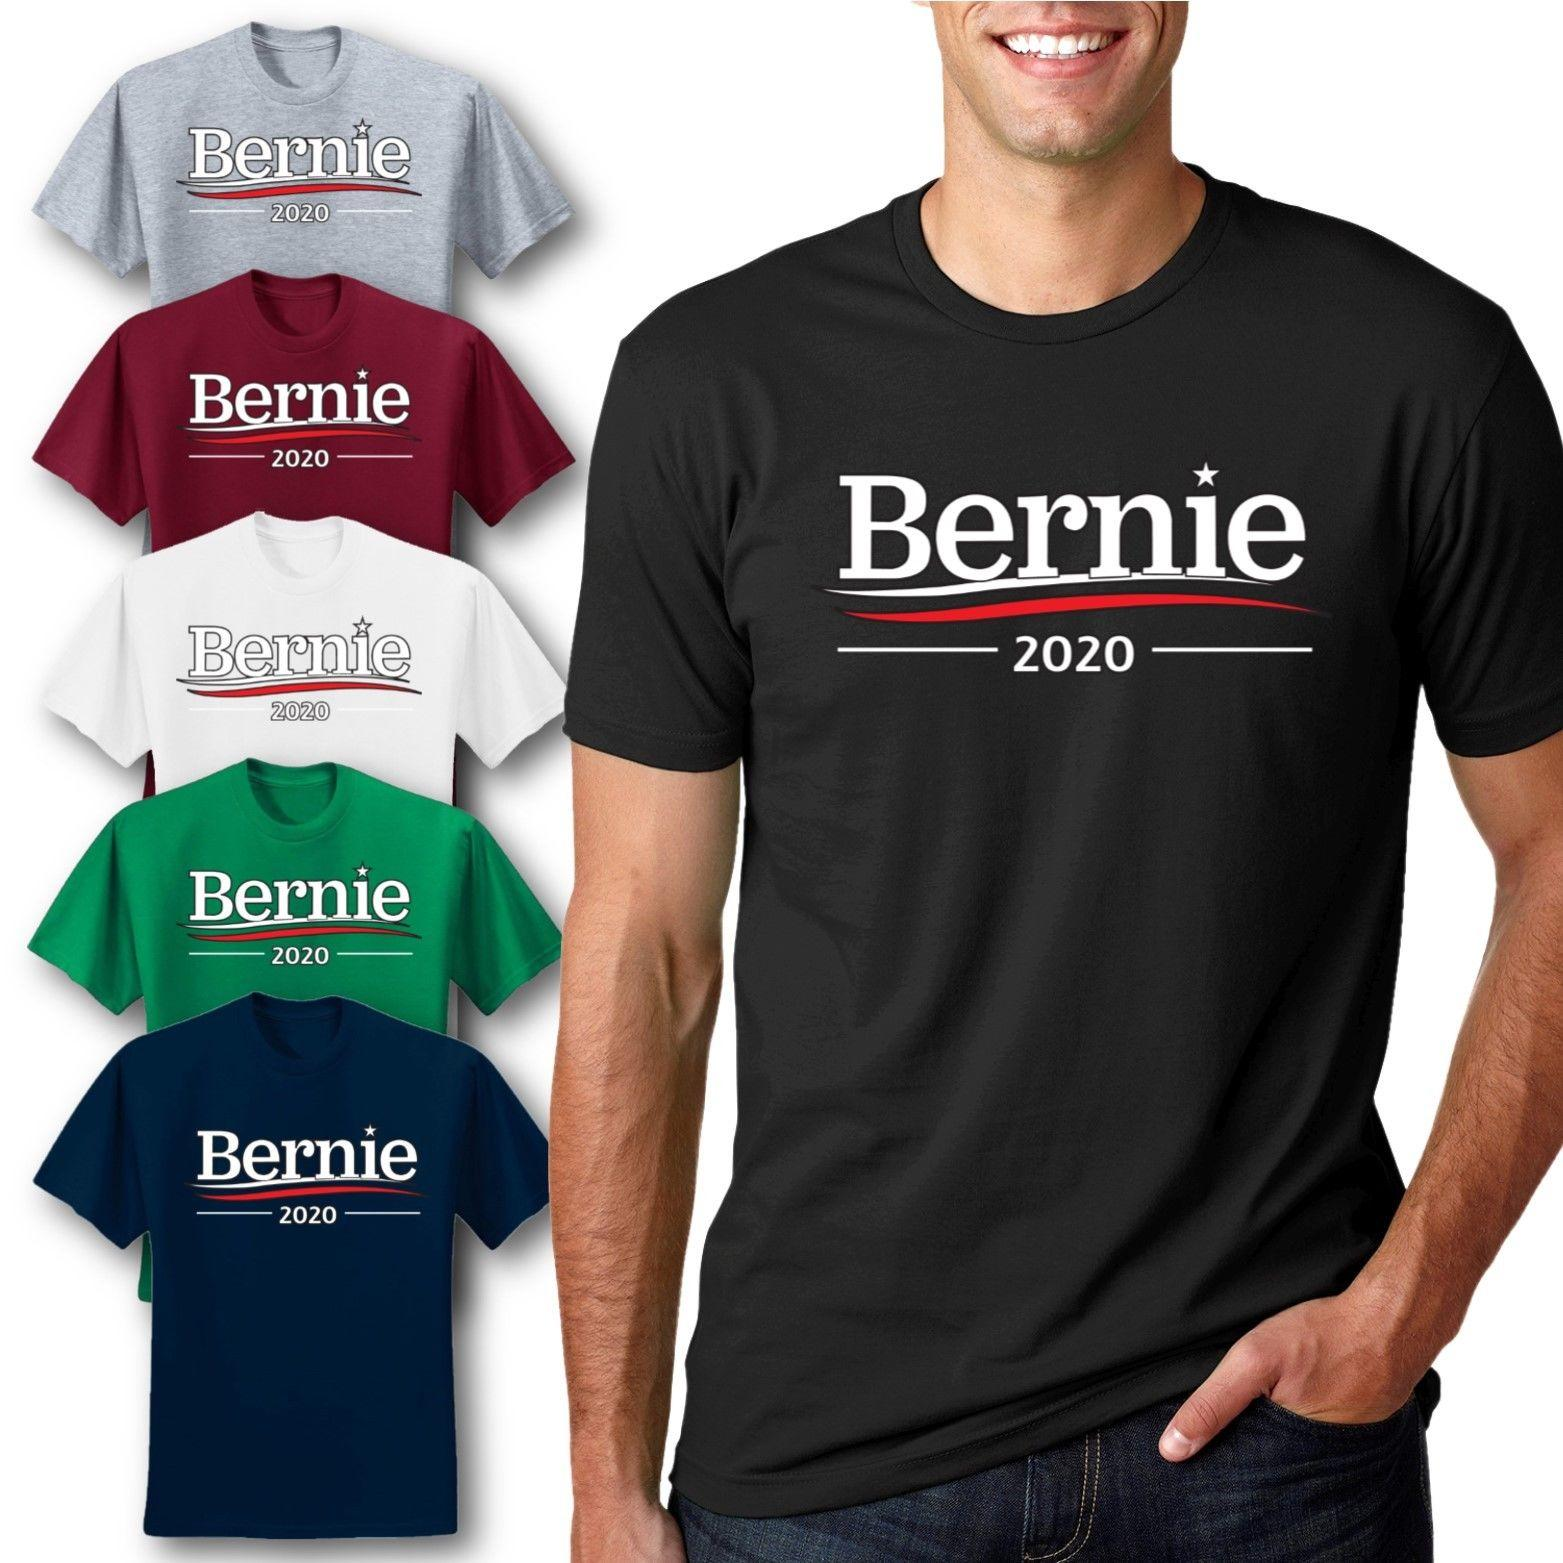 169e9e48 Bernie 2020 Official Campaign T Shirt Graphic US Election Politics Voting  TeeFunny Unisex Casual Tshirt Top T Shart Fun Shirts From Pepitaprint, ...